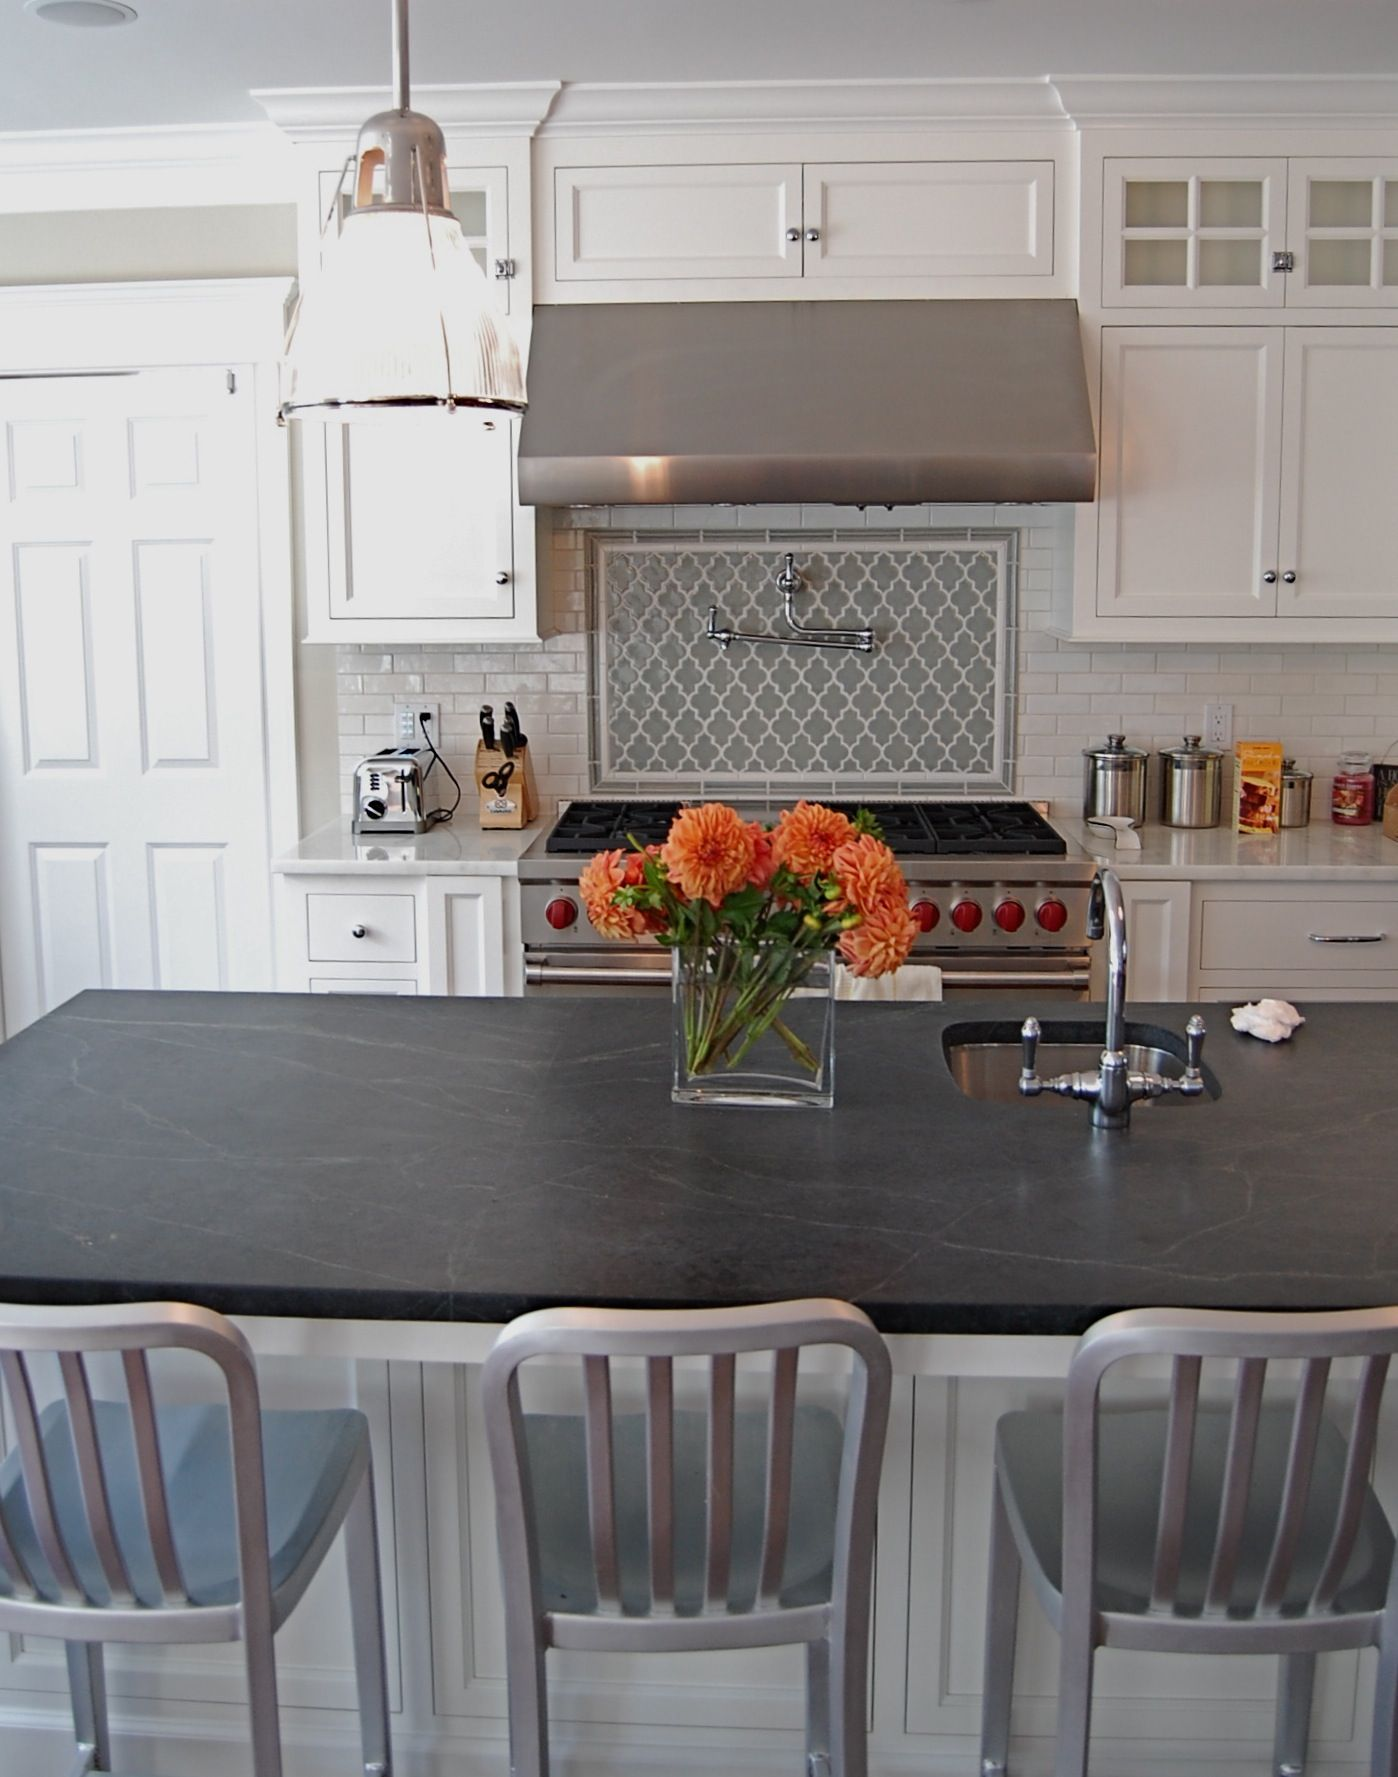 Love the backsplash behind the stove d would love a